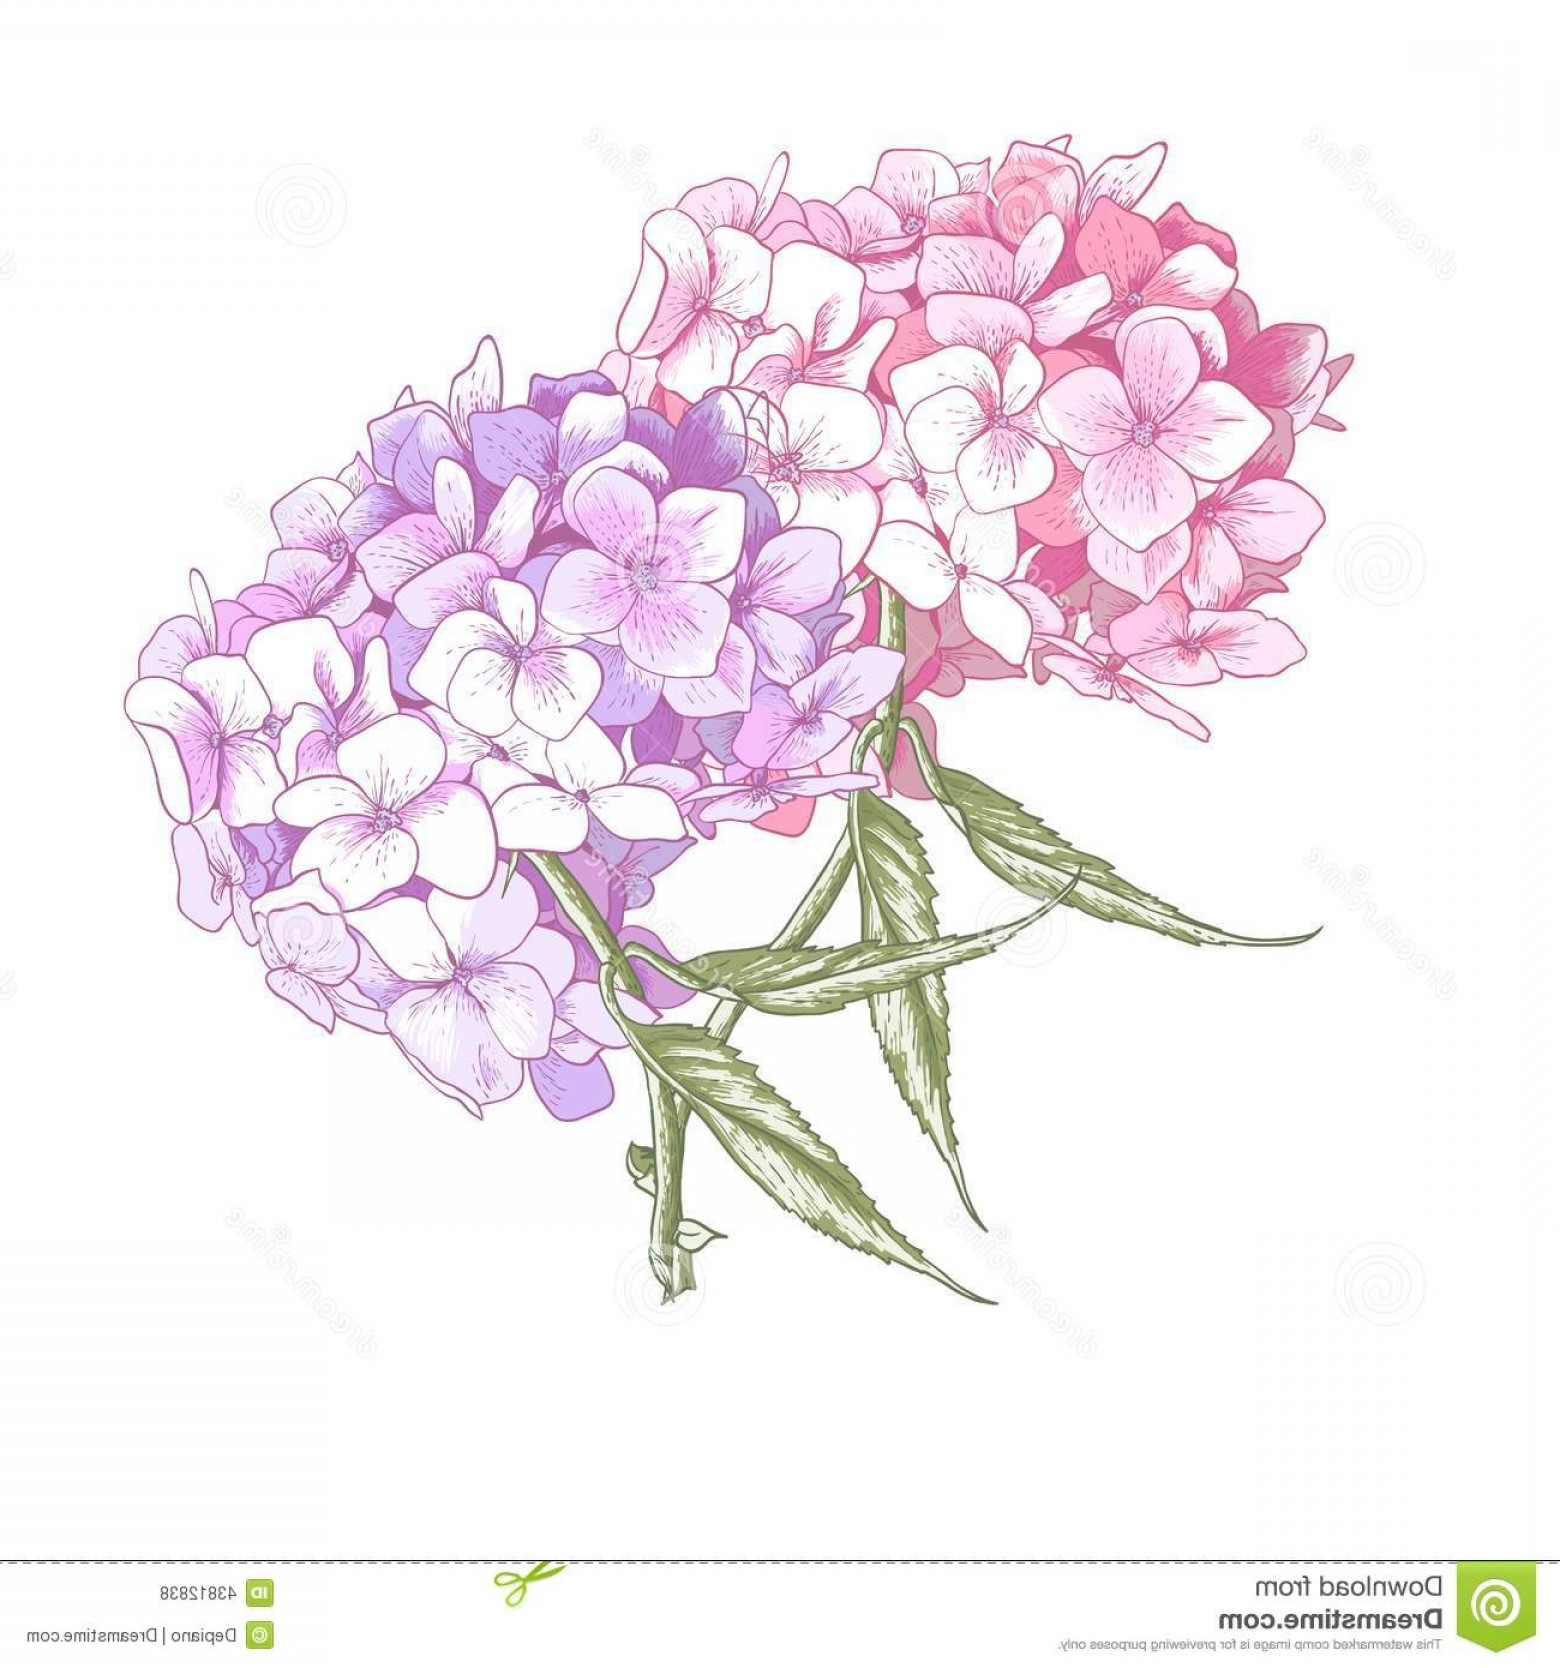 Hydrangea Vector Graphics: Stock Illustration Hydrangea Vintage Botanicalillustration Beautiful Pink Botanical Vector Illustration White Background Image